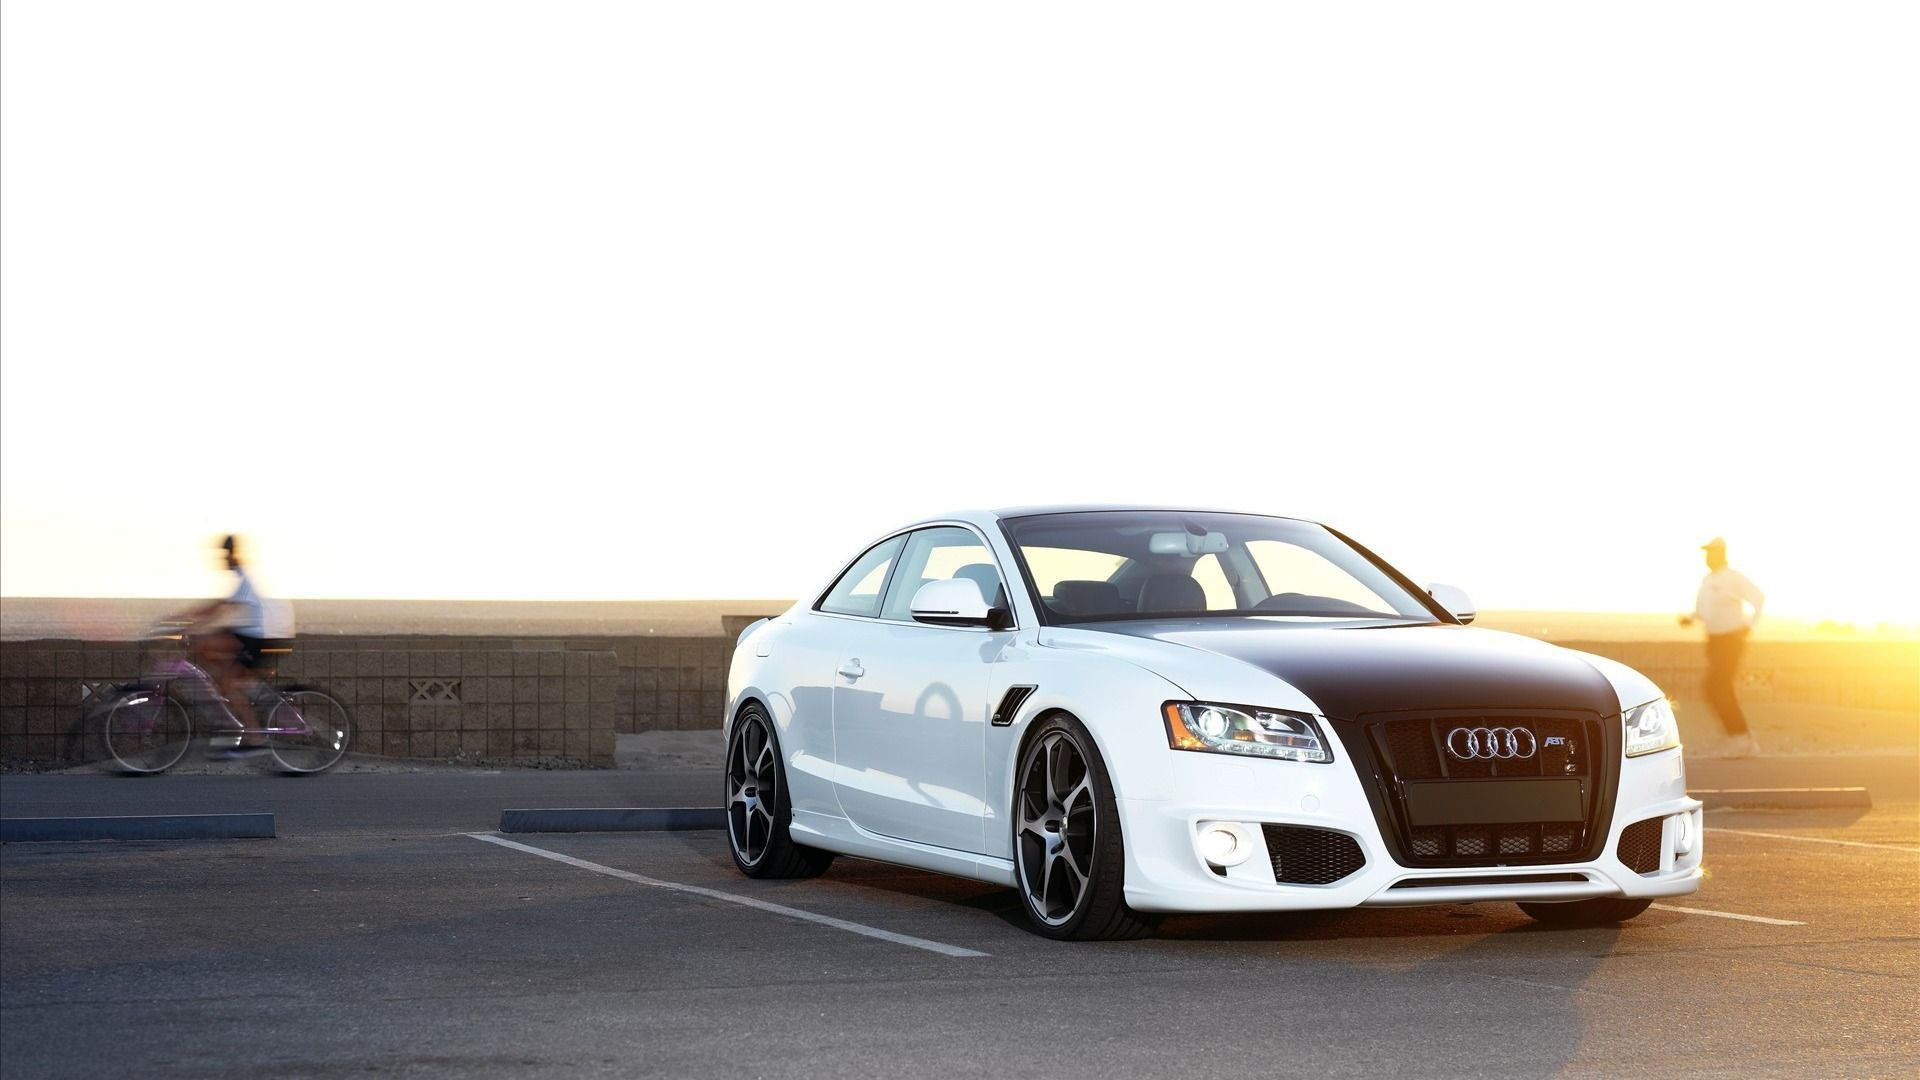 Wallpapers Of Audi Cars Full HD Httpwhatstrendingonlinecom - Audi car background